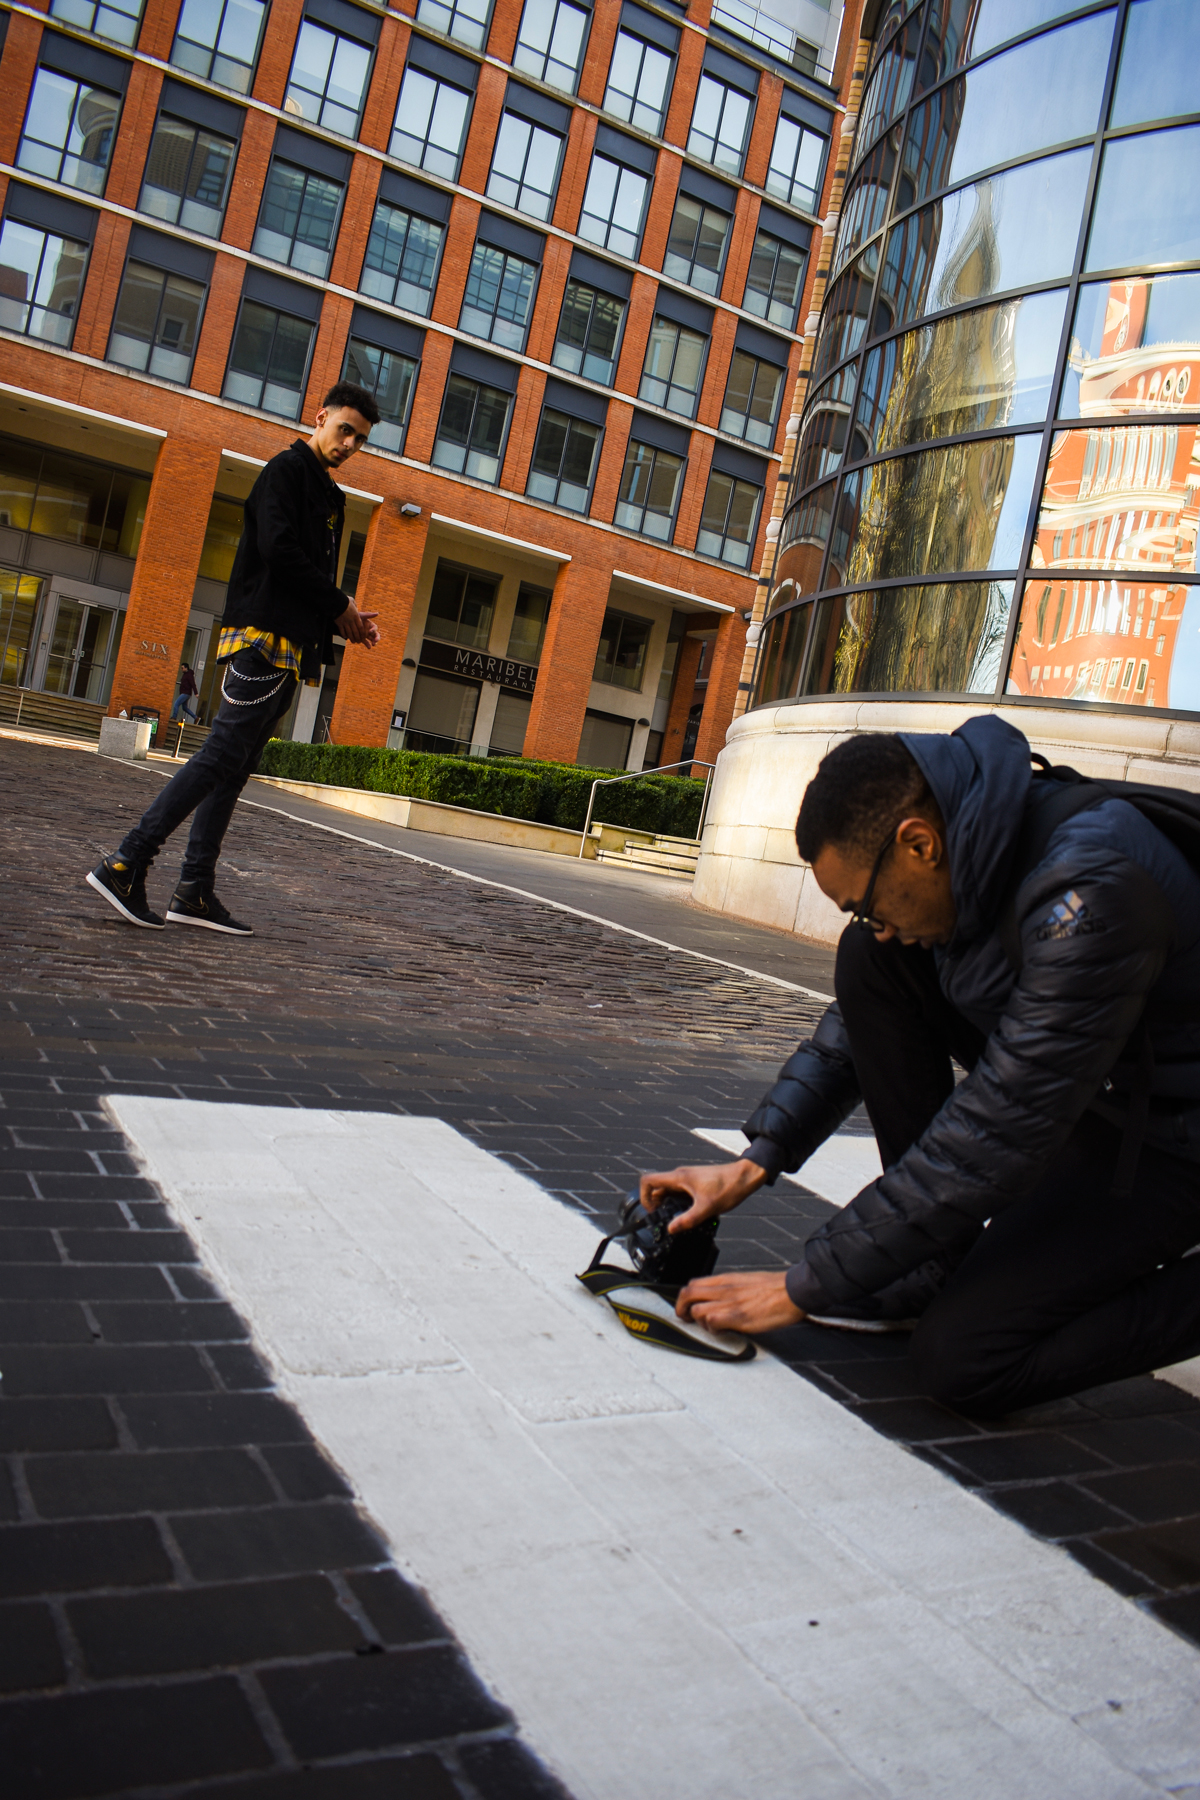 Brindley place with Cody & Alex having fun shooting fashion for instagram